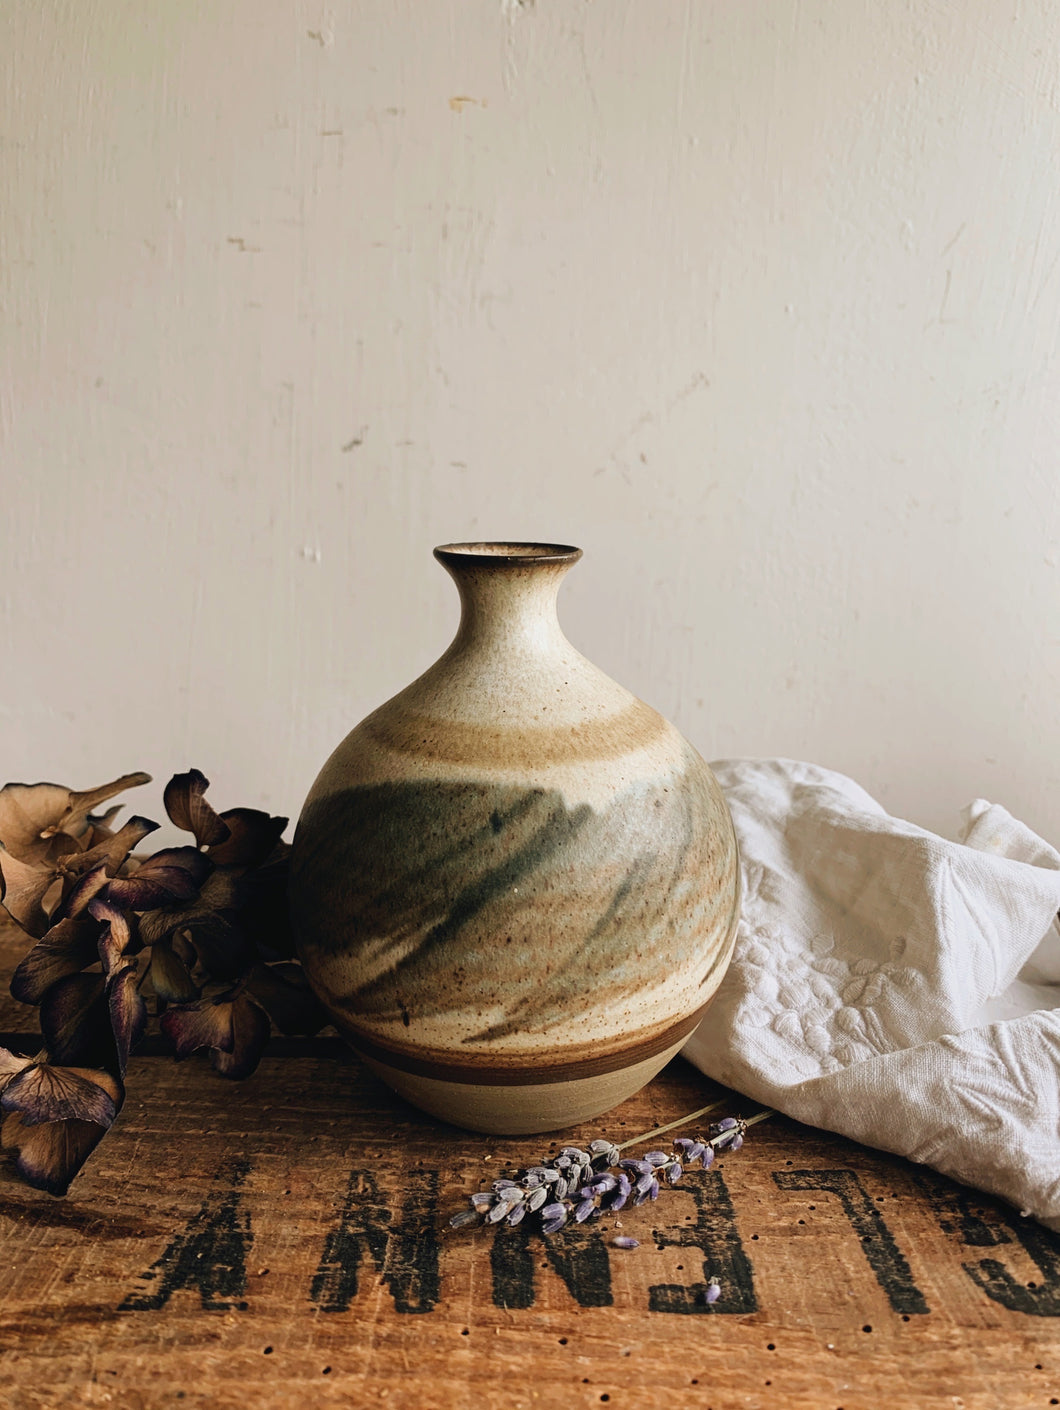 Rustic Decorative Ceramic Vase